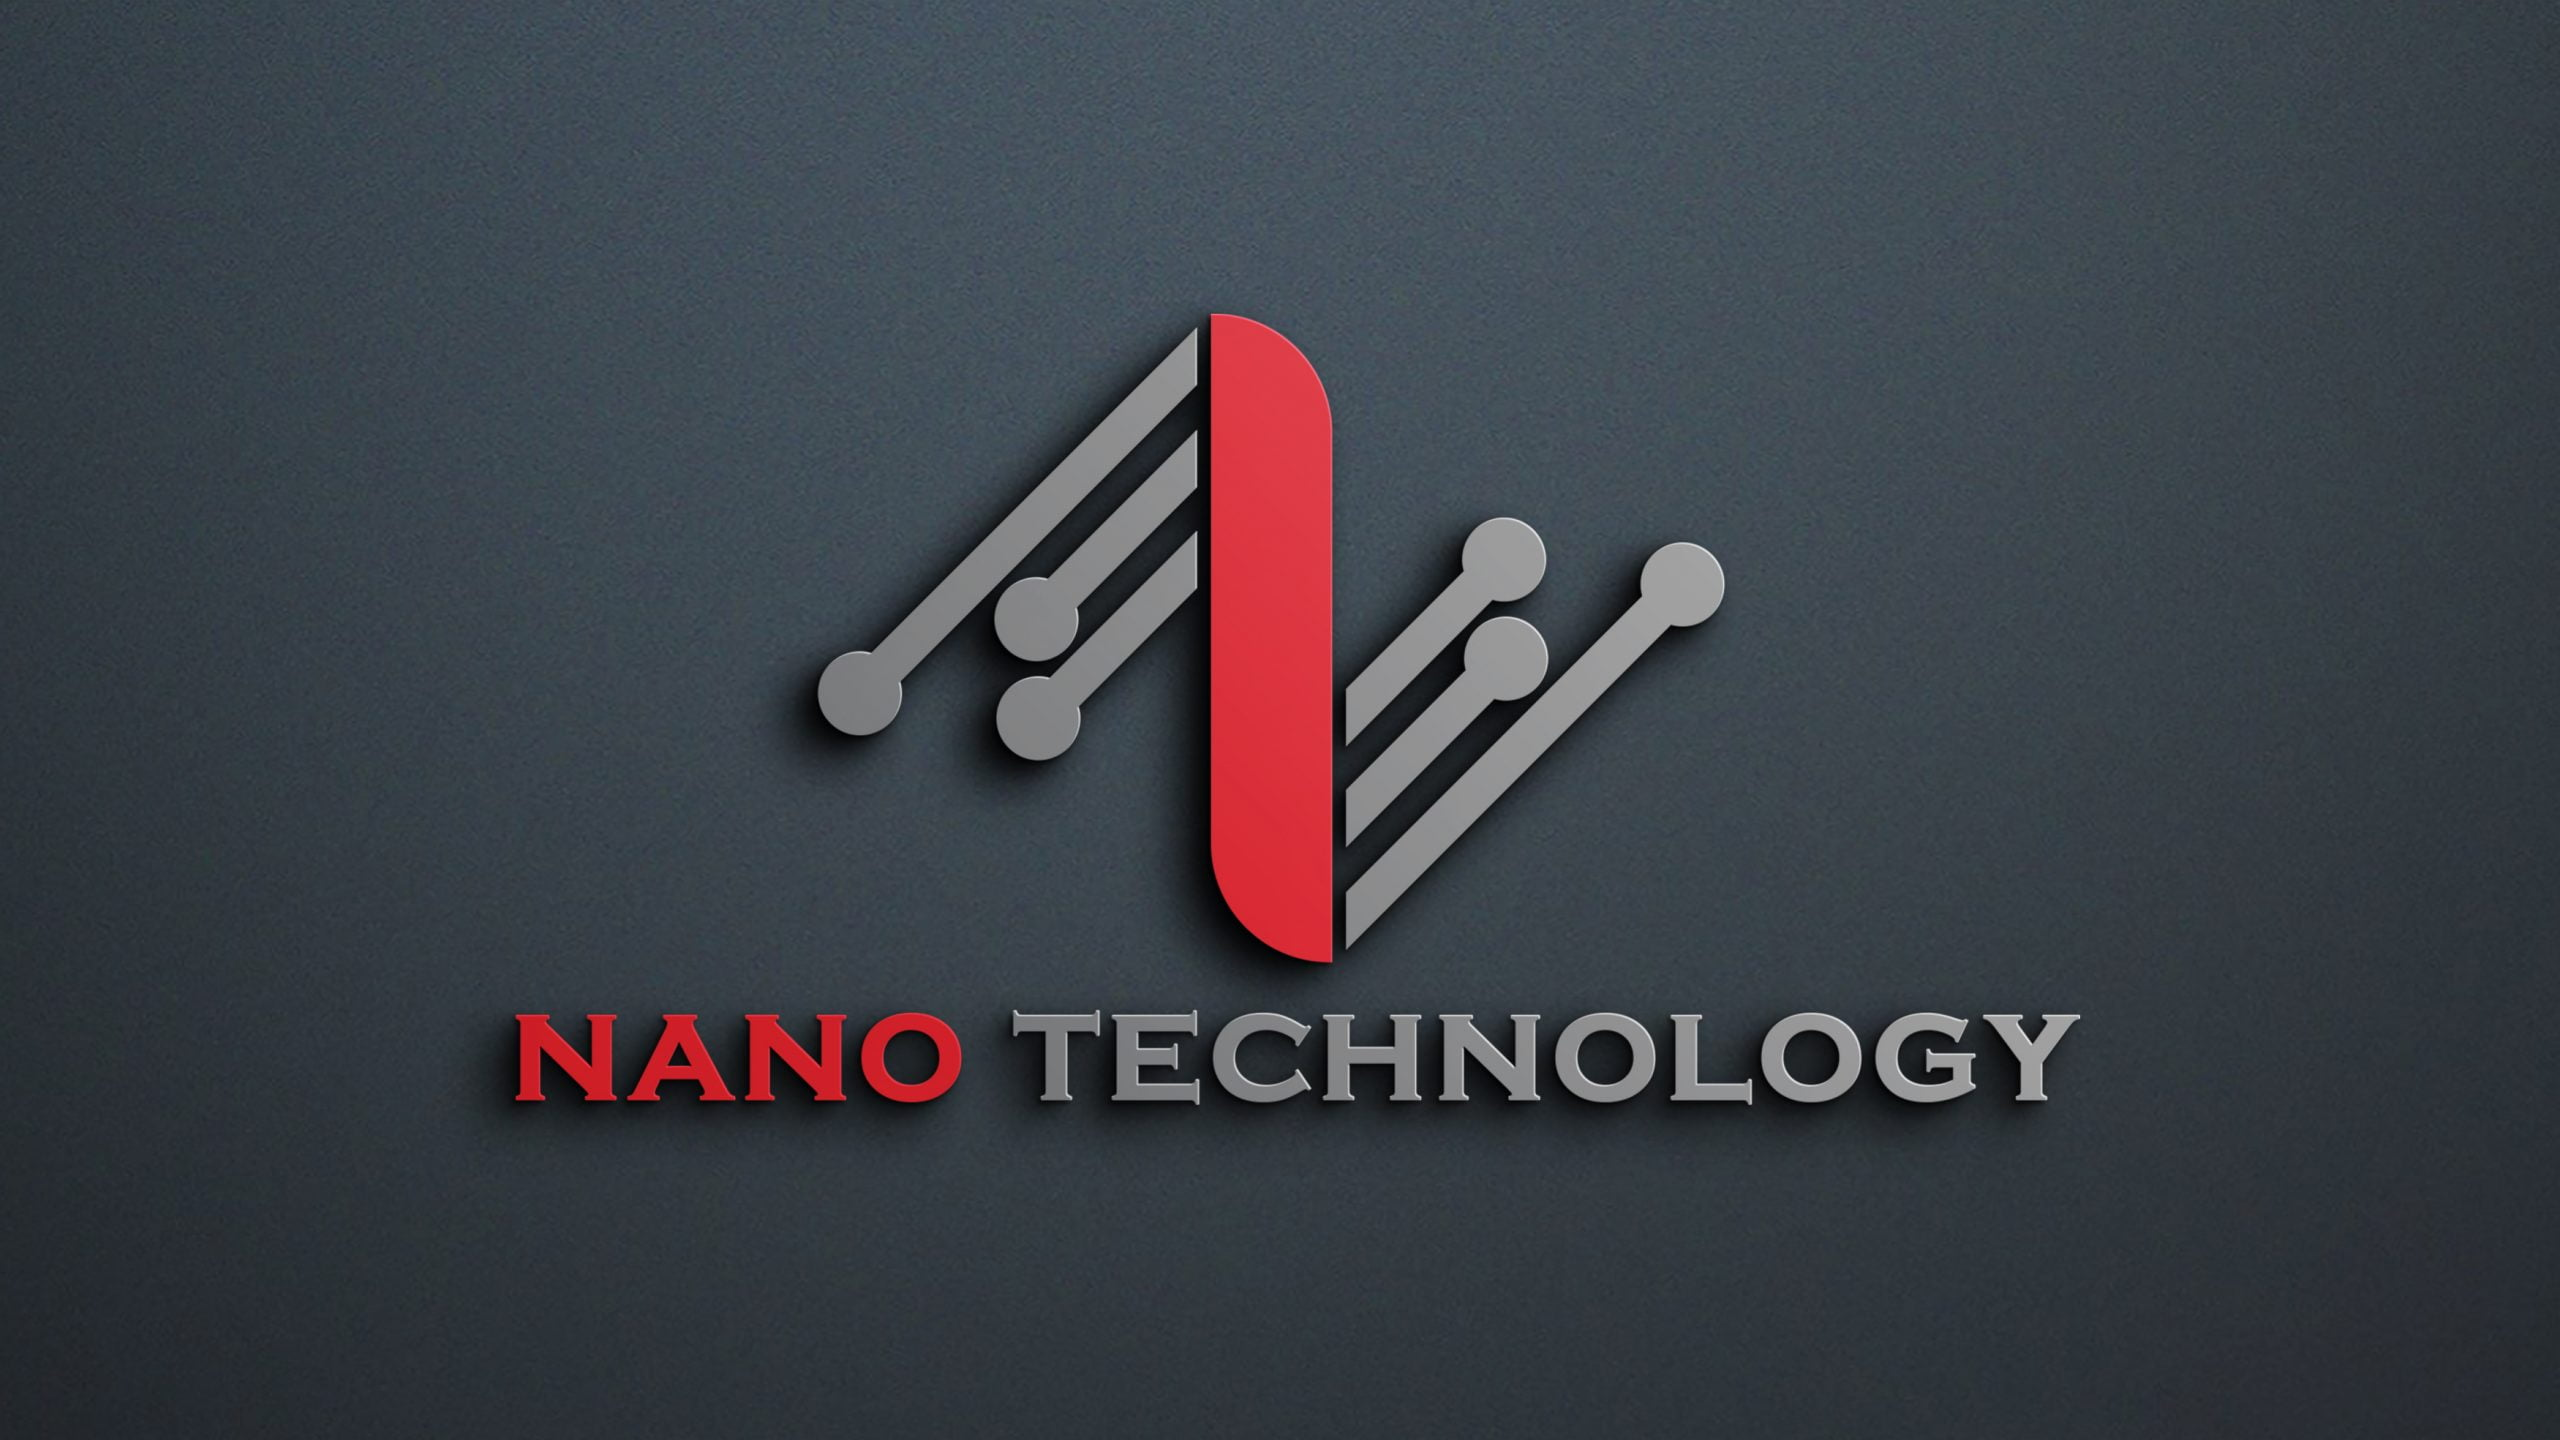 Abstract Technology Logo Design Free